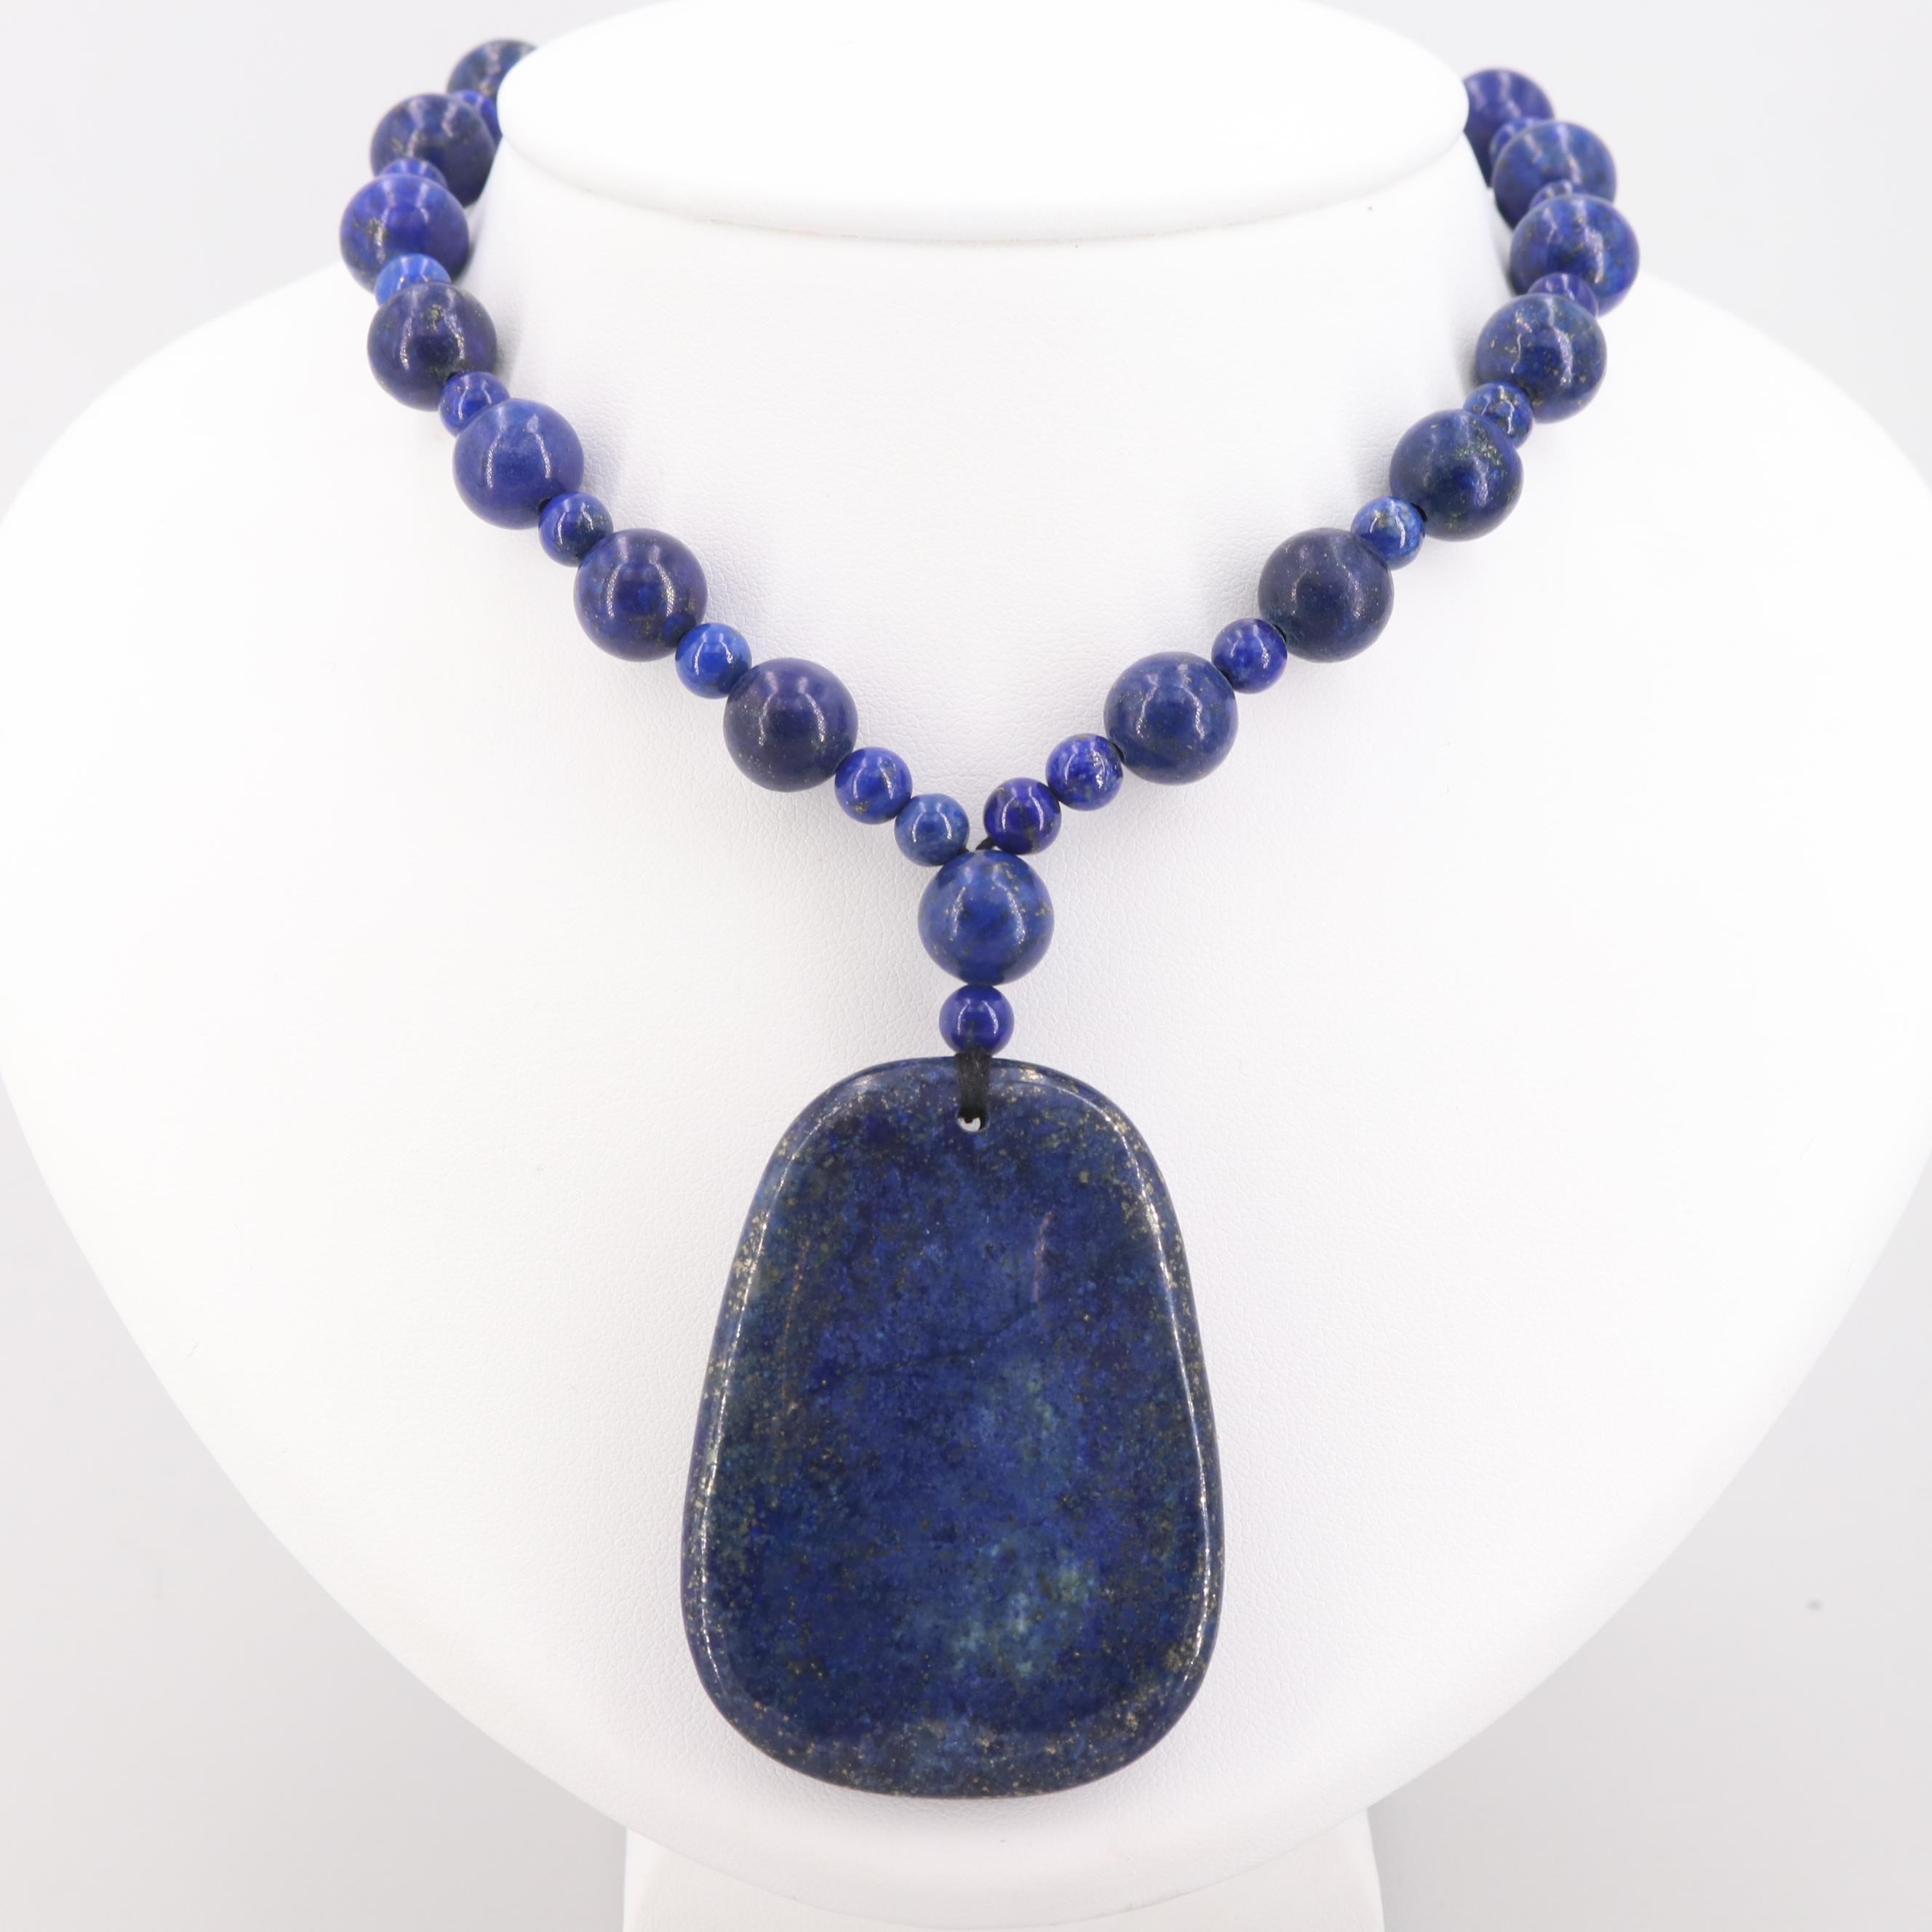 Sterling Silver Lapis Lazuli Bead Necklace and Pendant